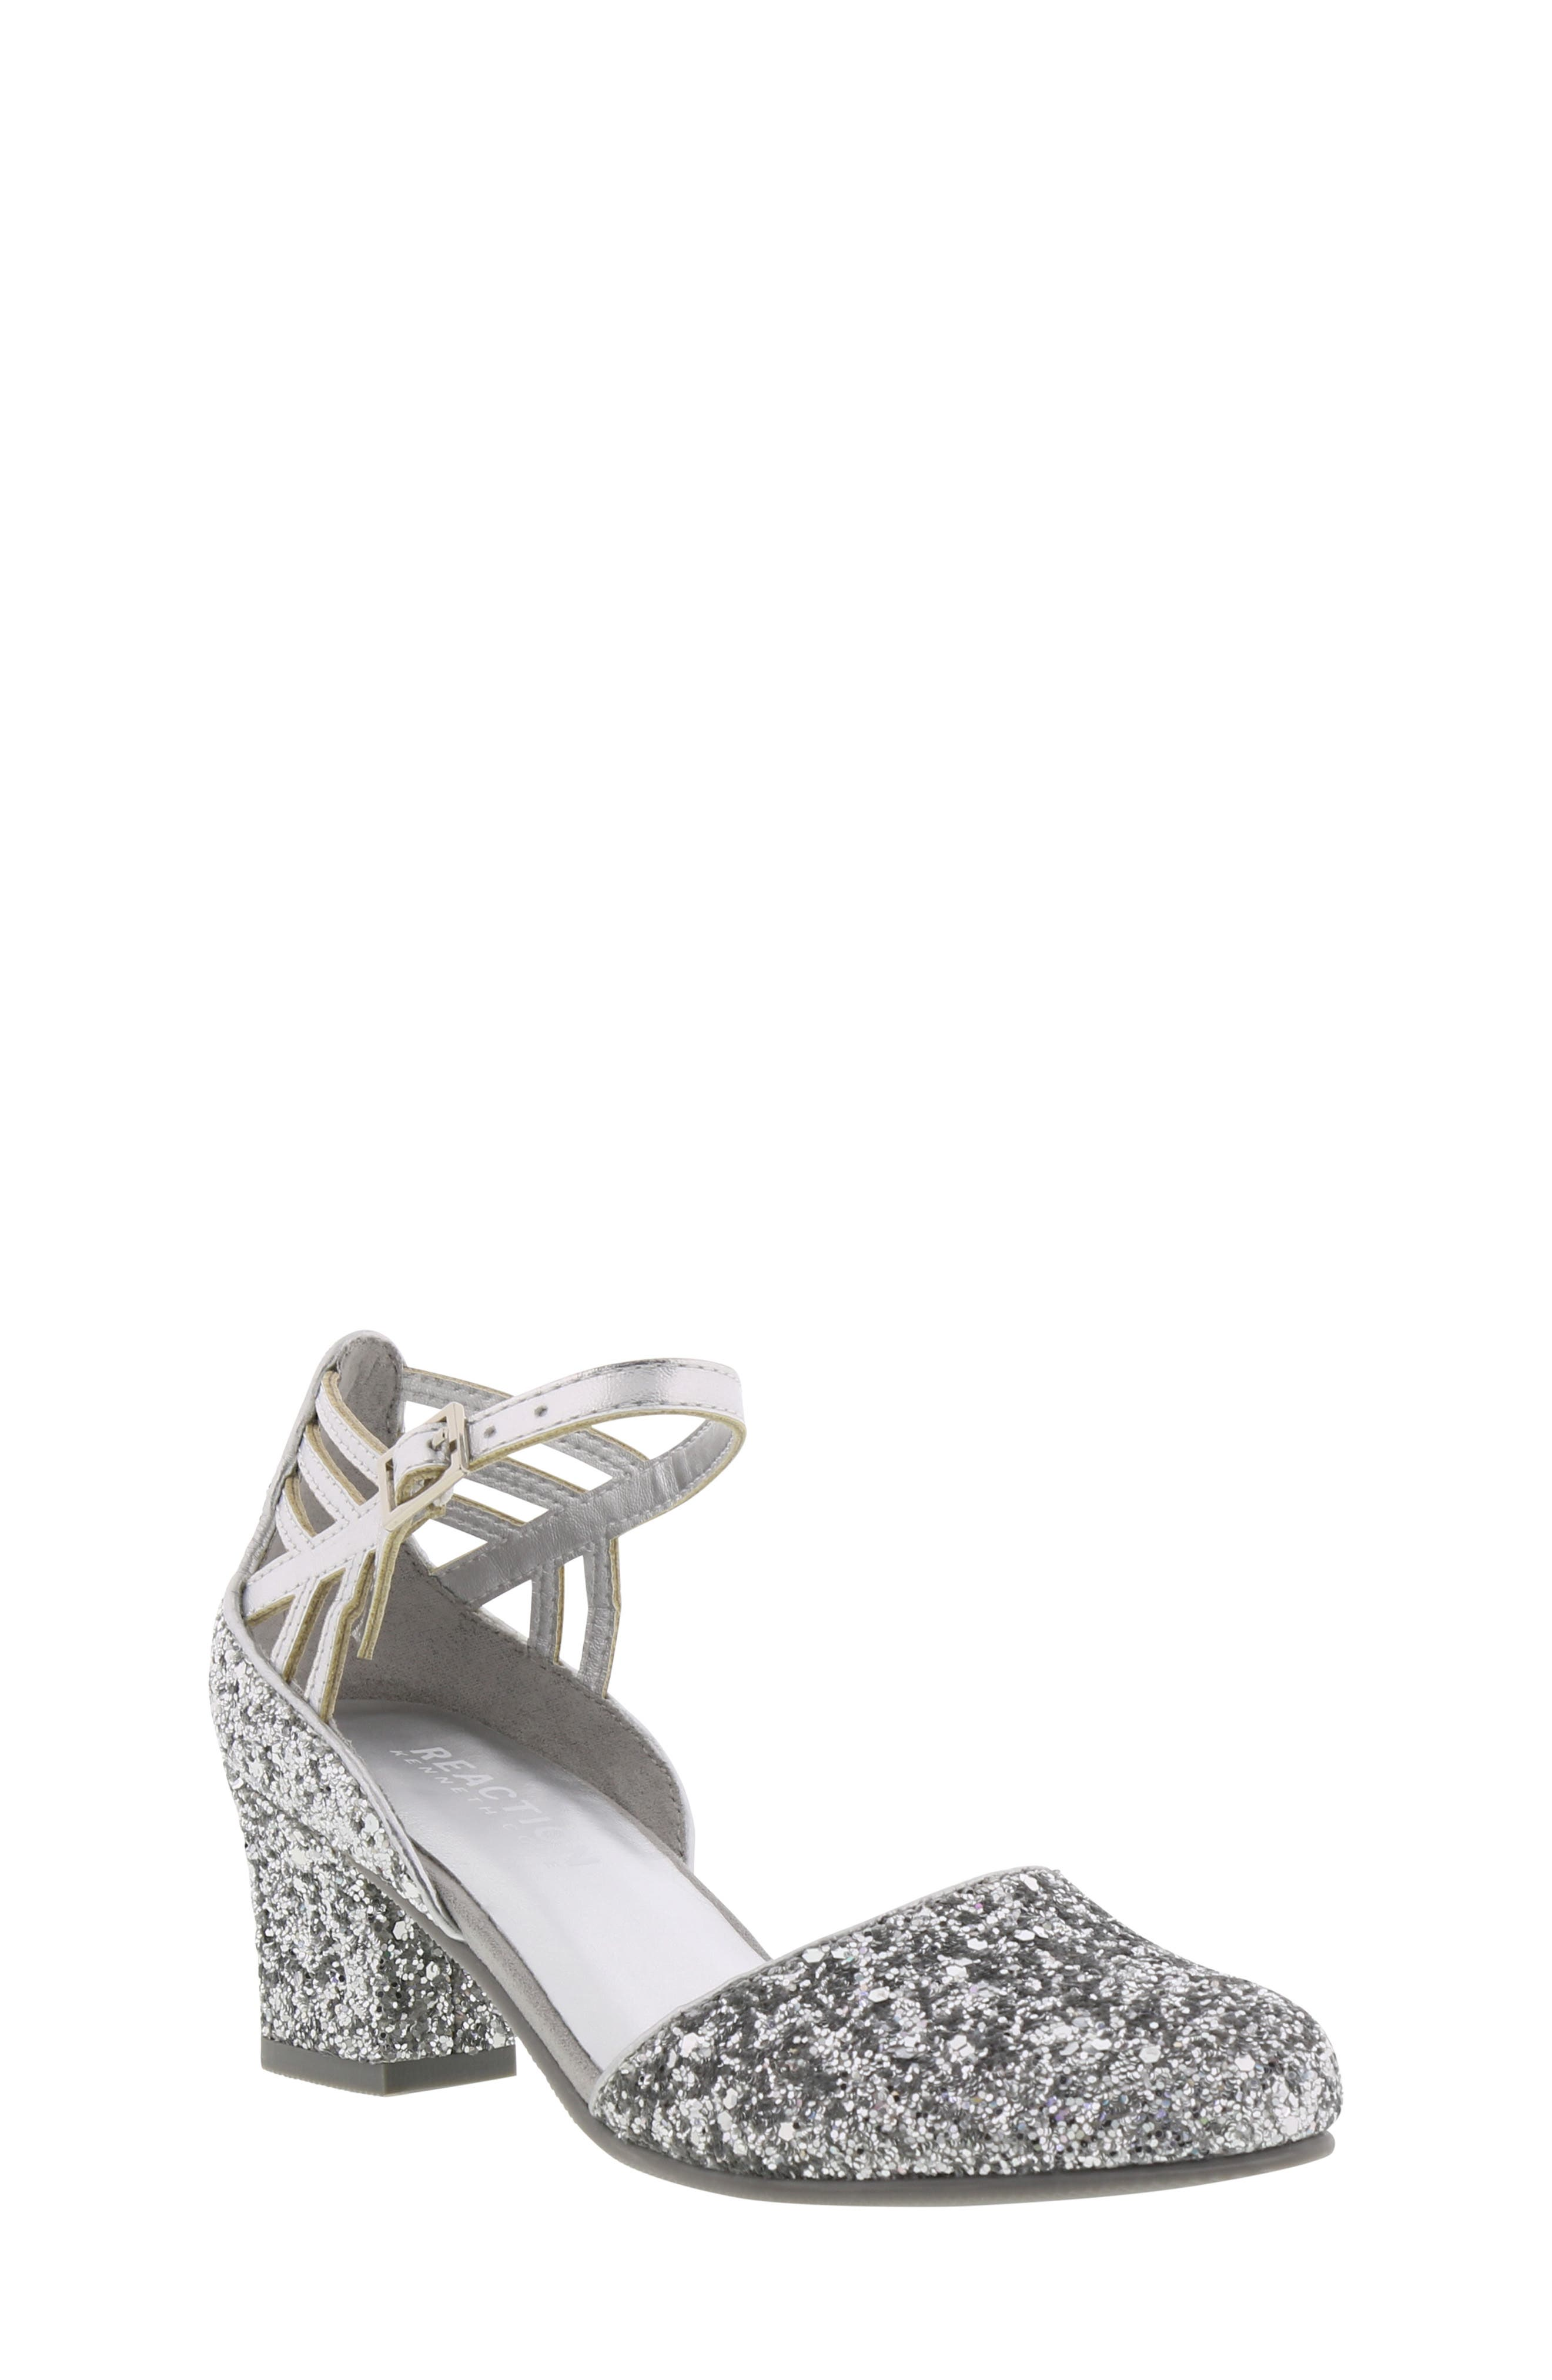 REACTION KENNETH COLE Kenneth Cole New York Sarah Shine Pump, Main, color, SILVER MULTI